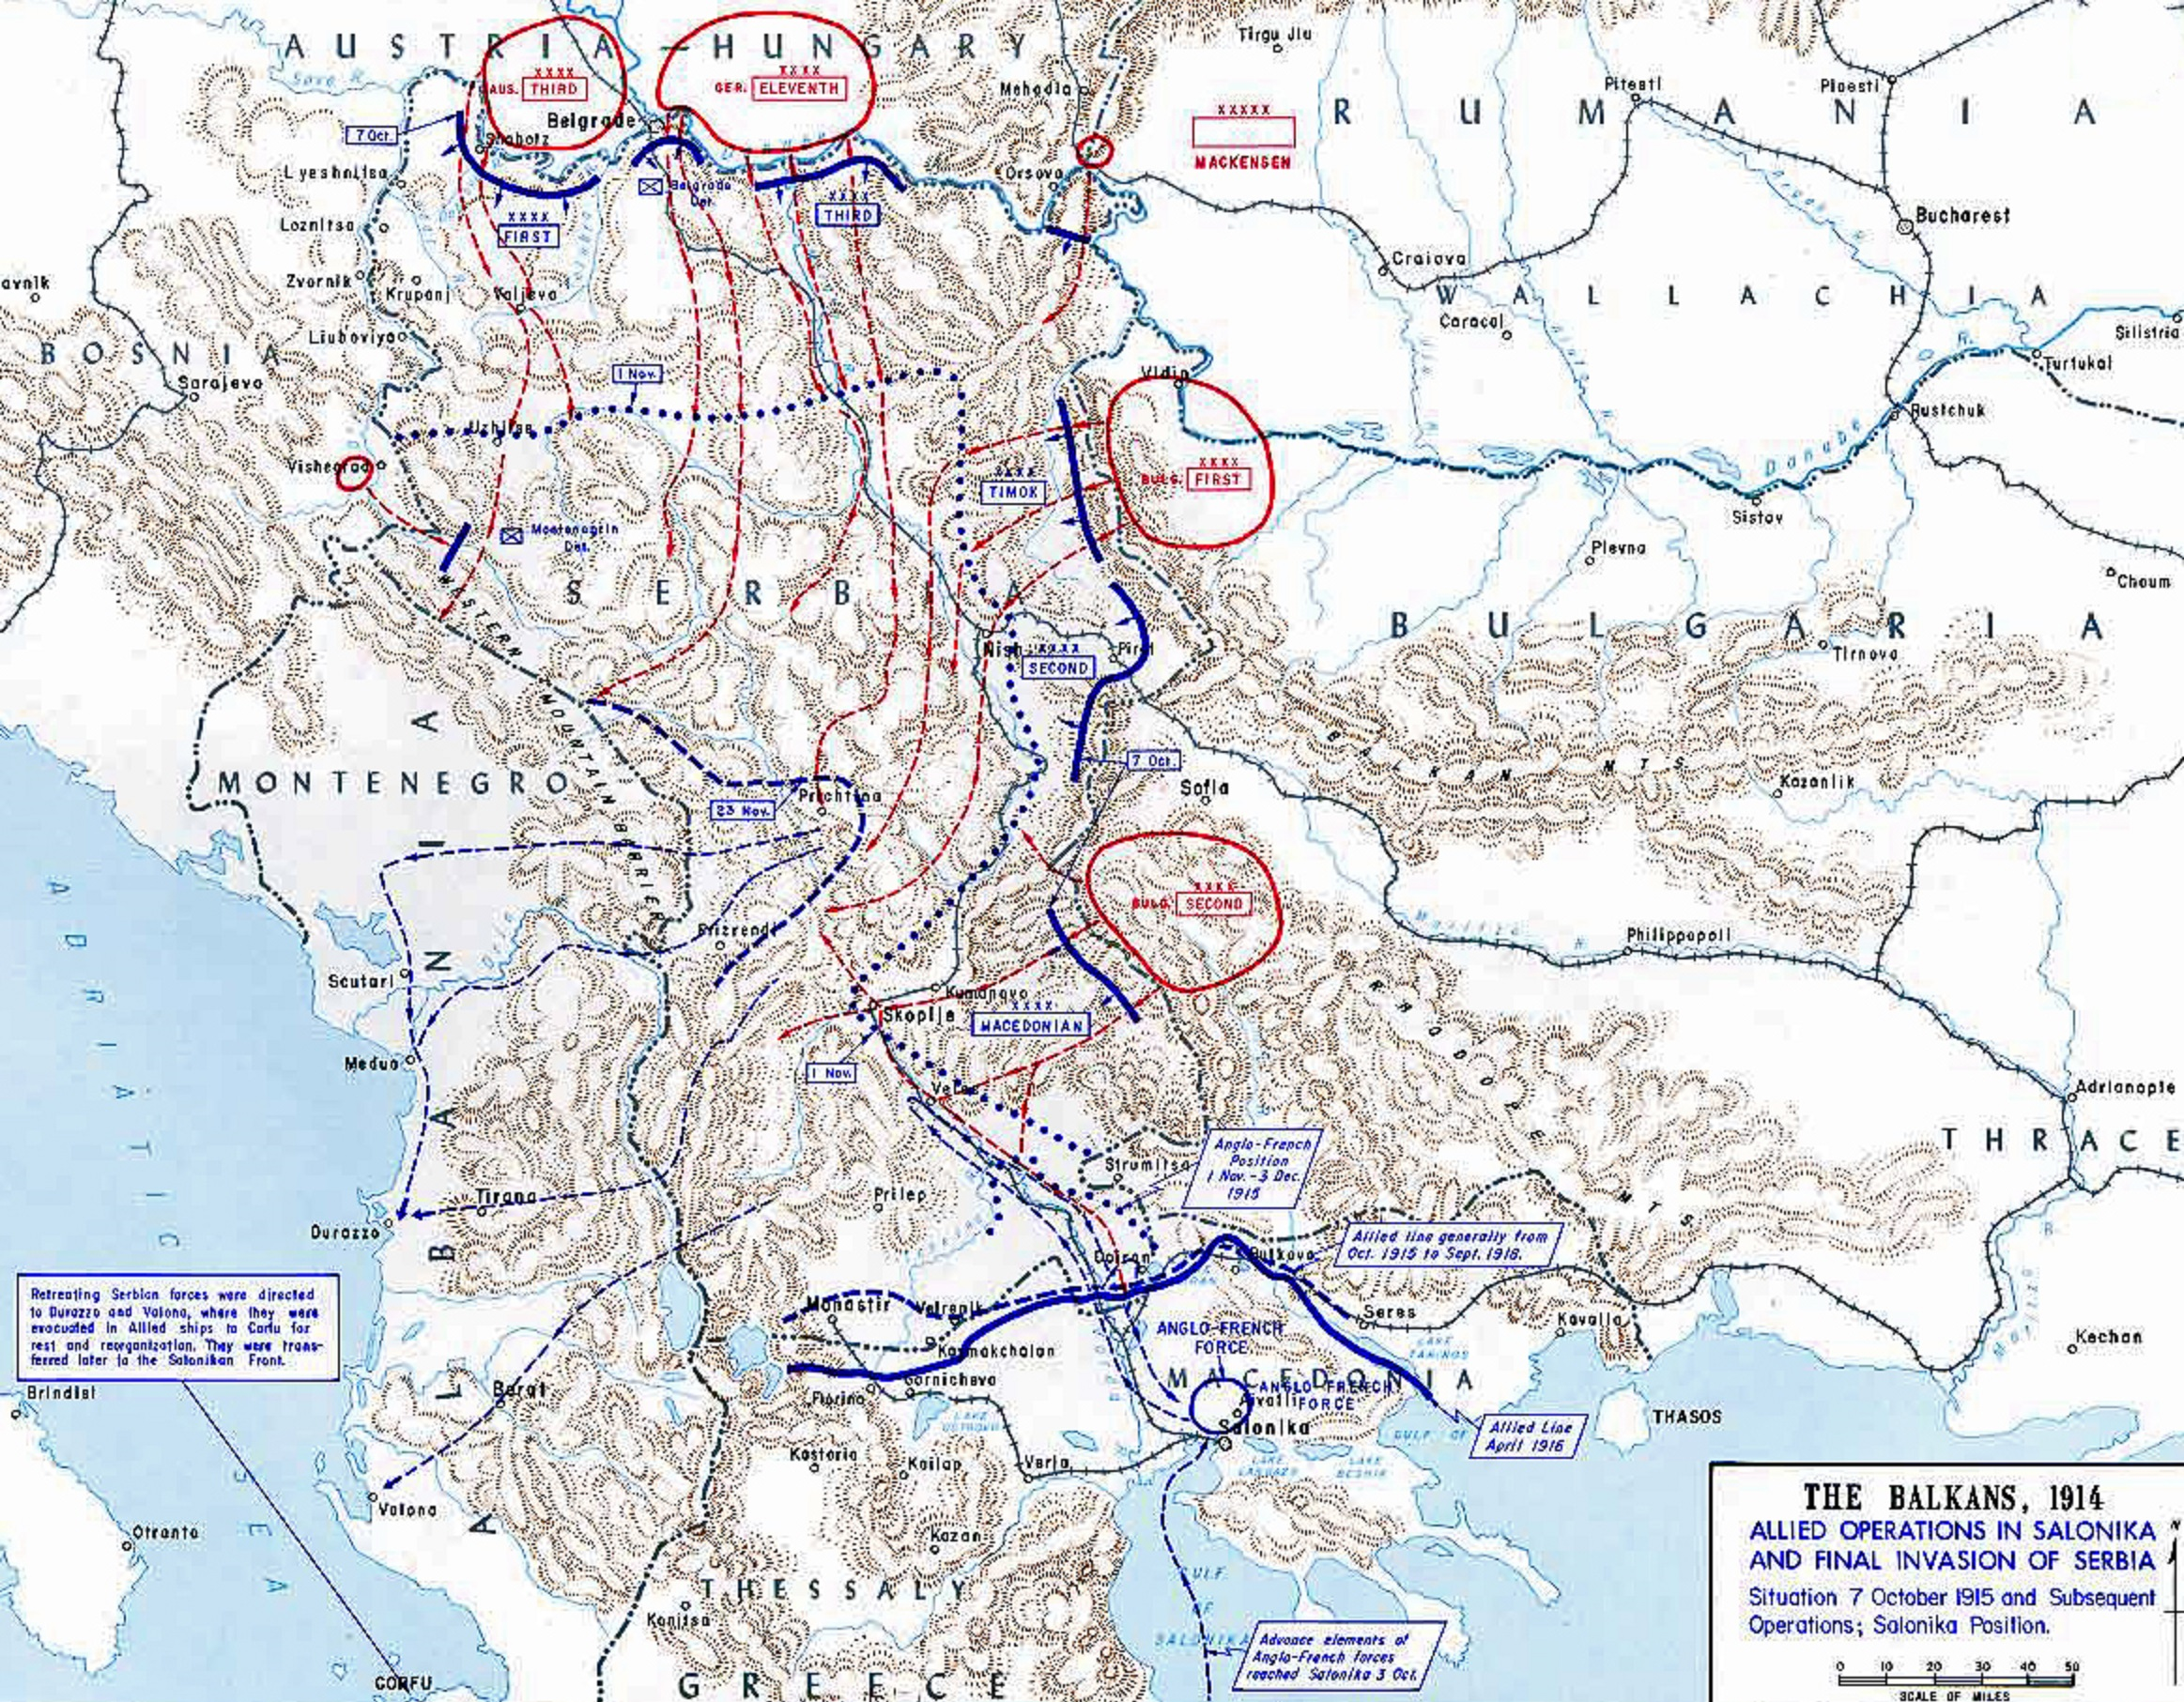 15th JANUARY CORFU!  FRANCE SAVED SERBIAN ARMY DIEULOIS